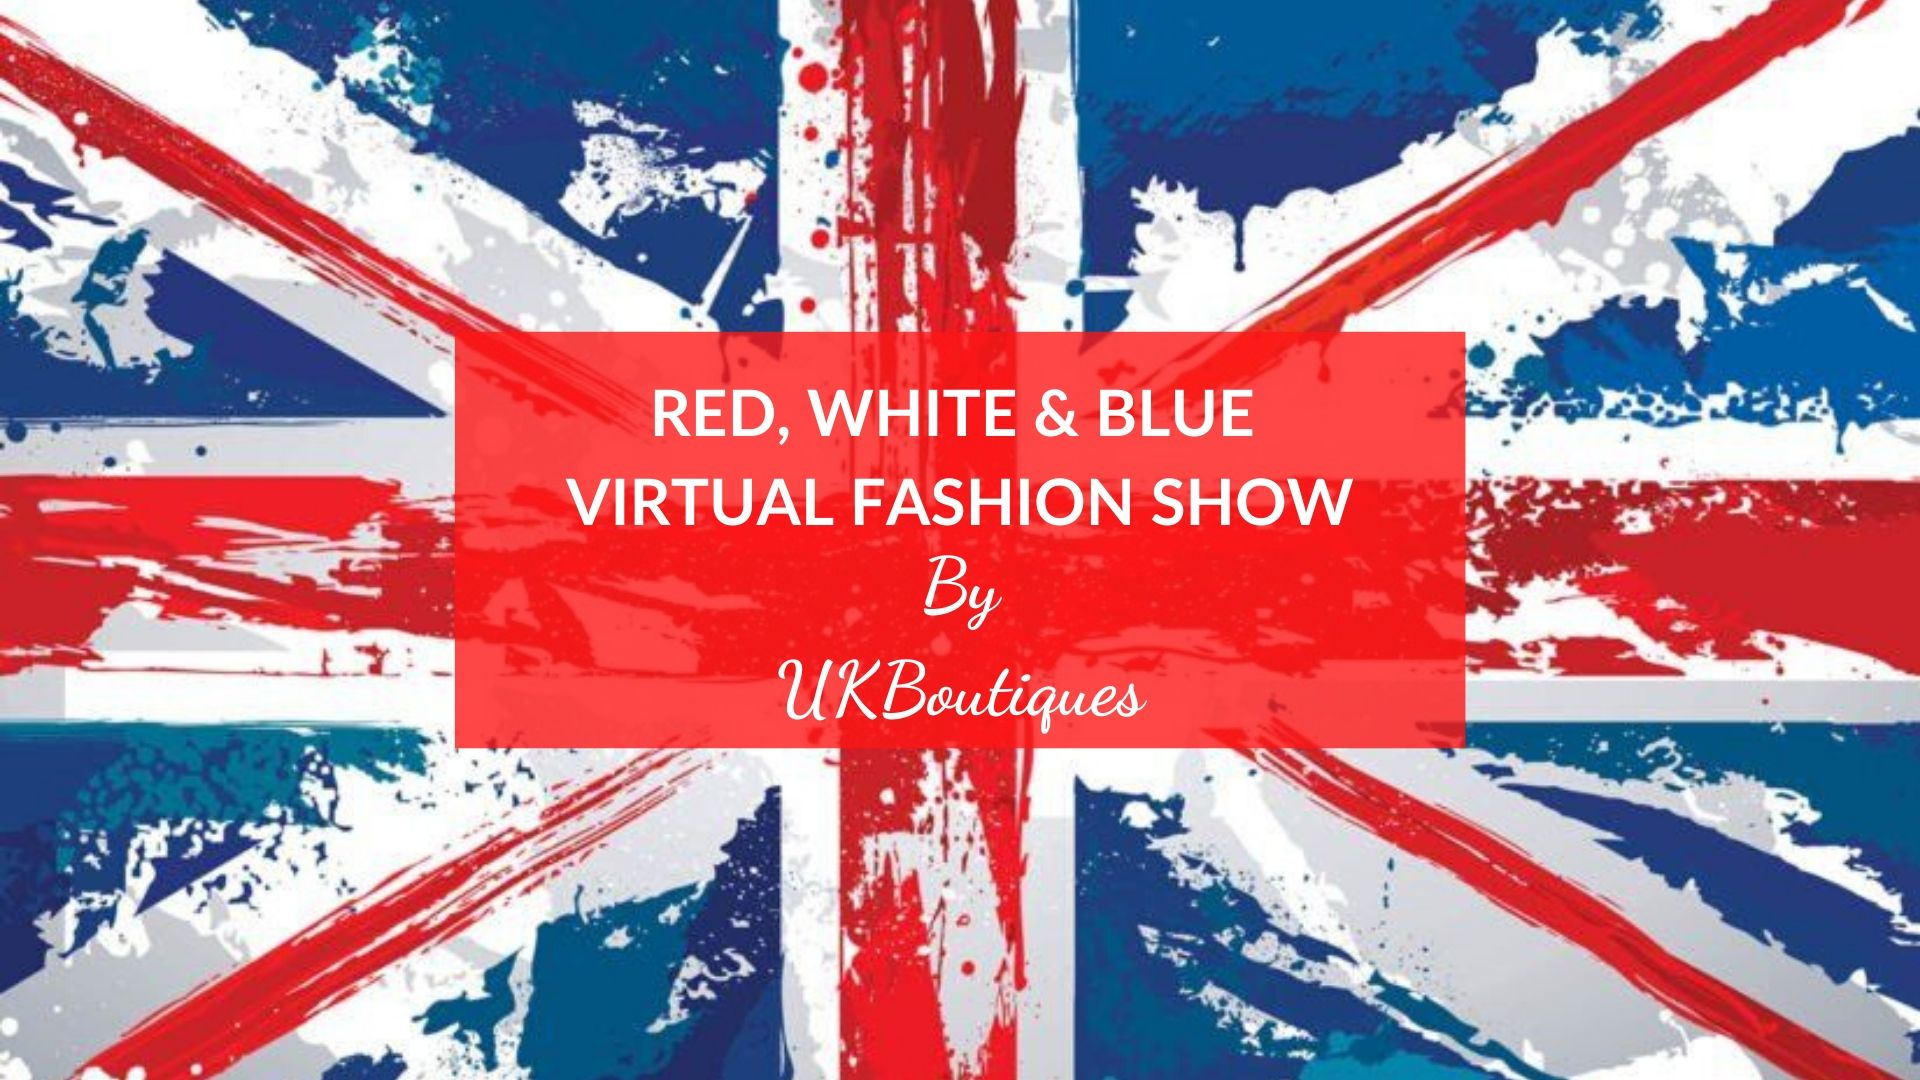 UKBoutiques Virtual Fashion Show - Red, White & Blue